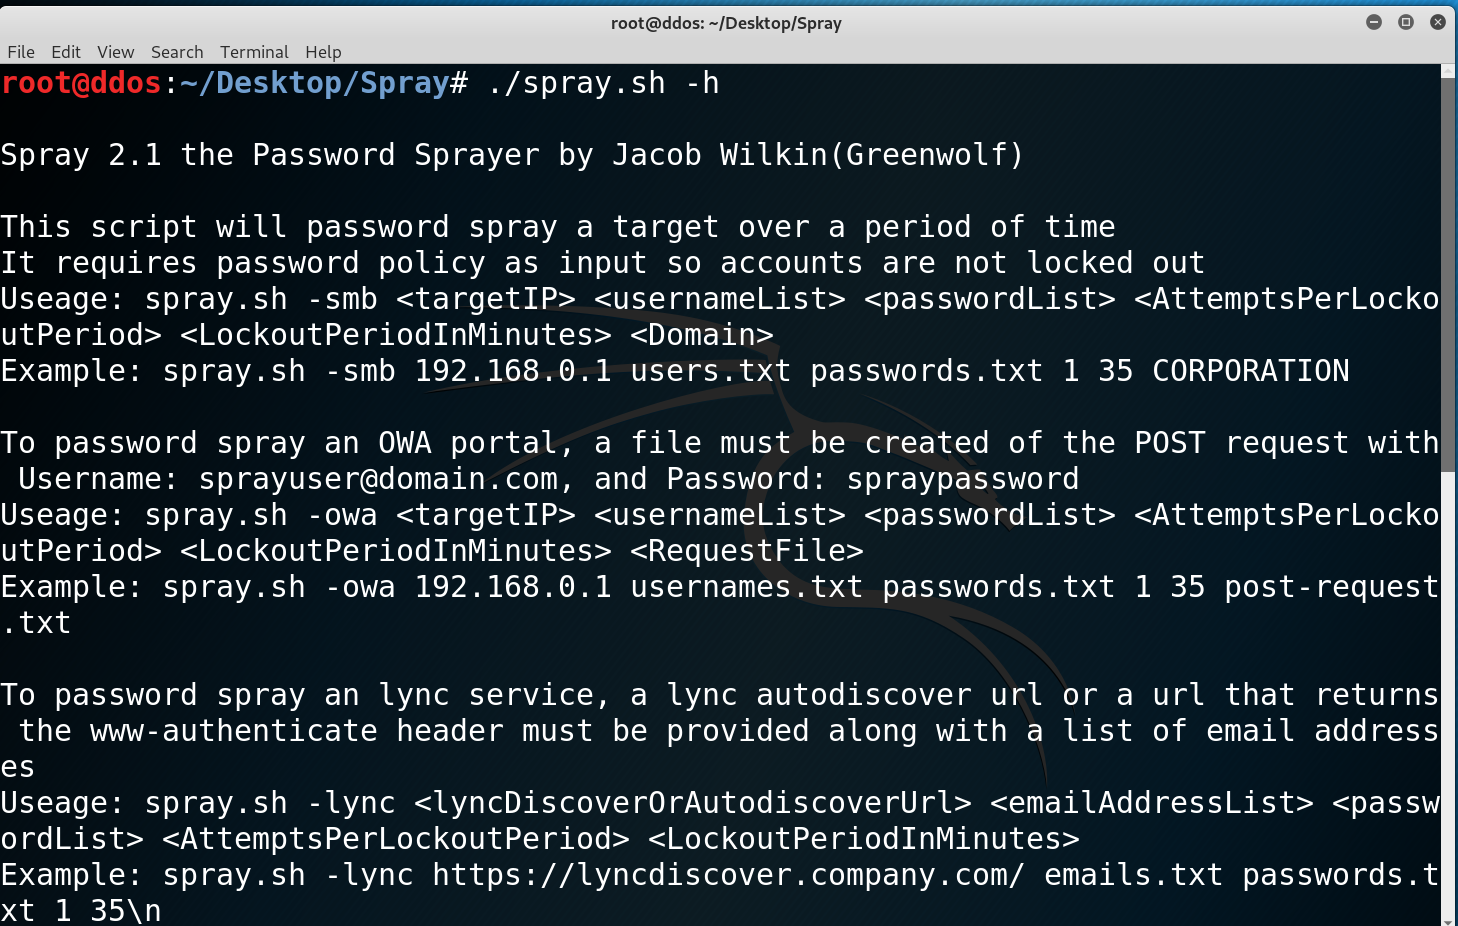 Spray: Password Spraying tool for Active Directory Credentials